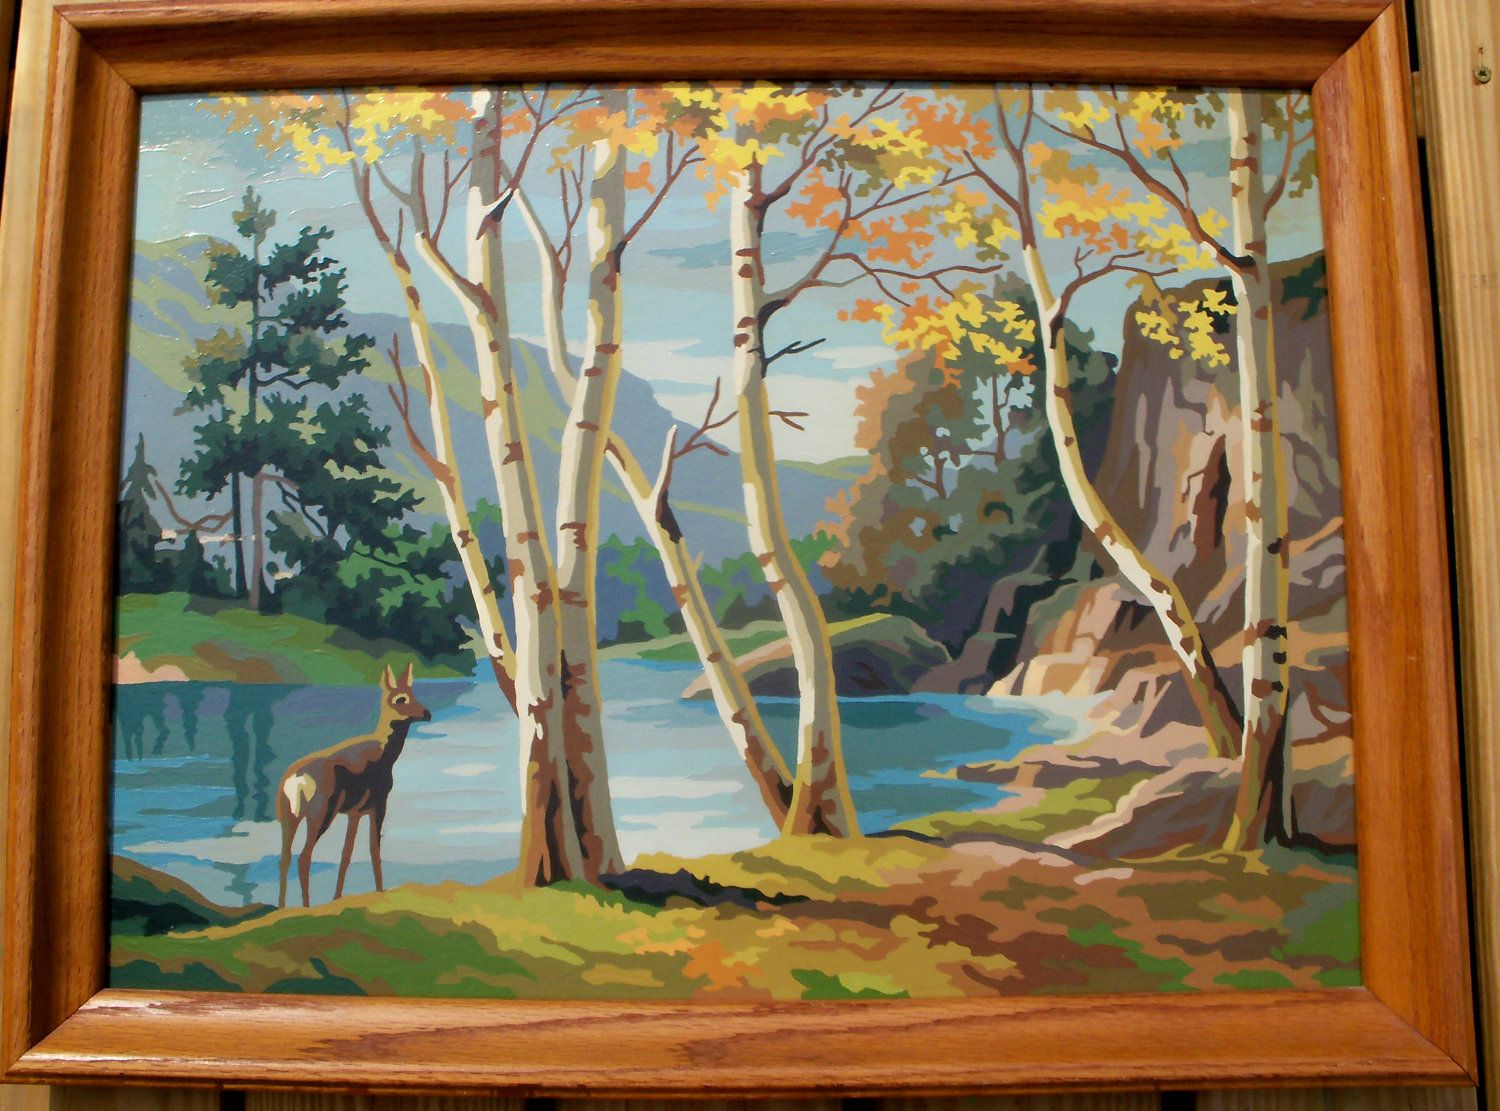 Very Large Vintage Paint By Number Framed Fall Scene Doe At Deer Lake Free Shipping 72 00 Via Etsy Vintage Painting Large Painting Painting